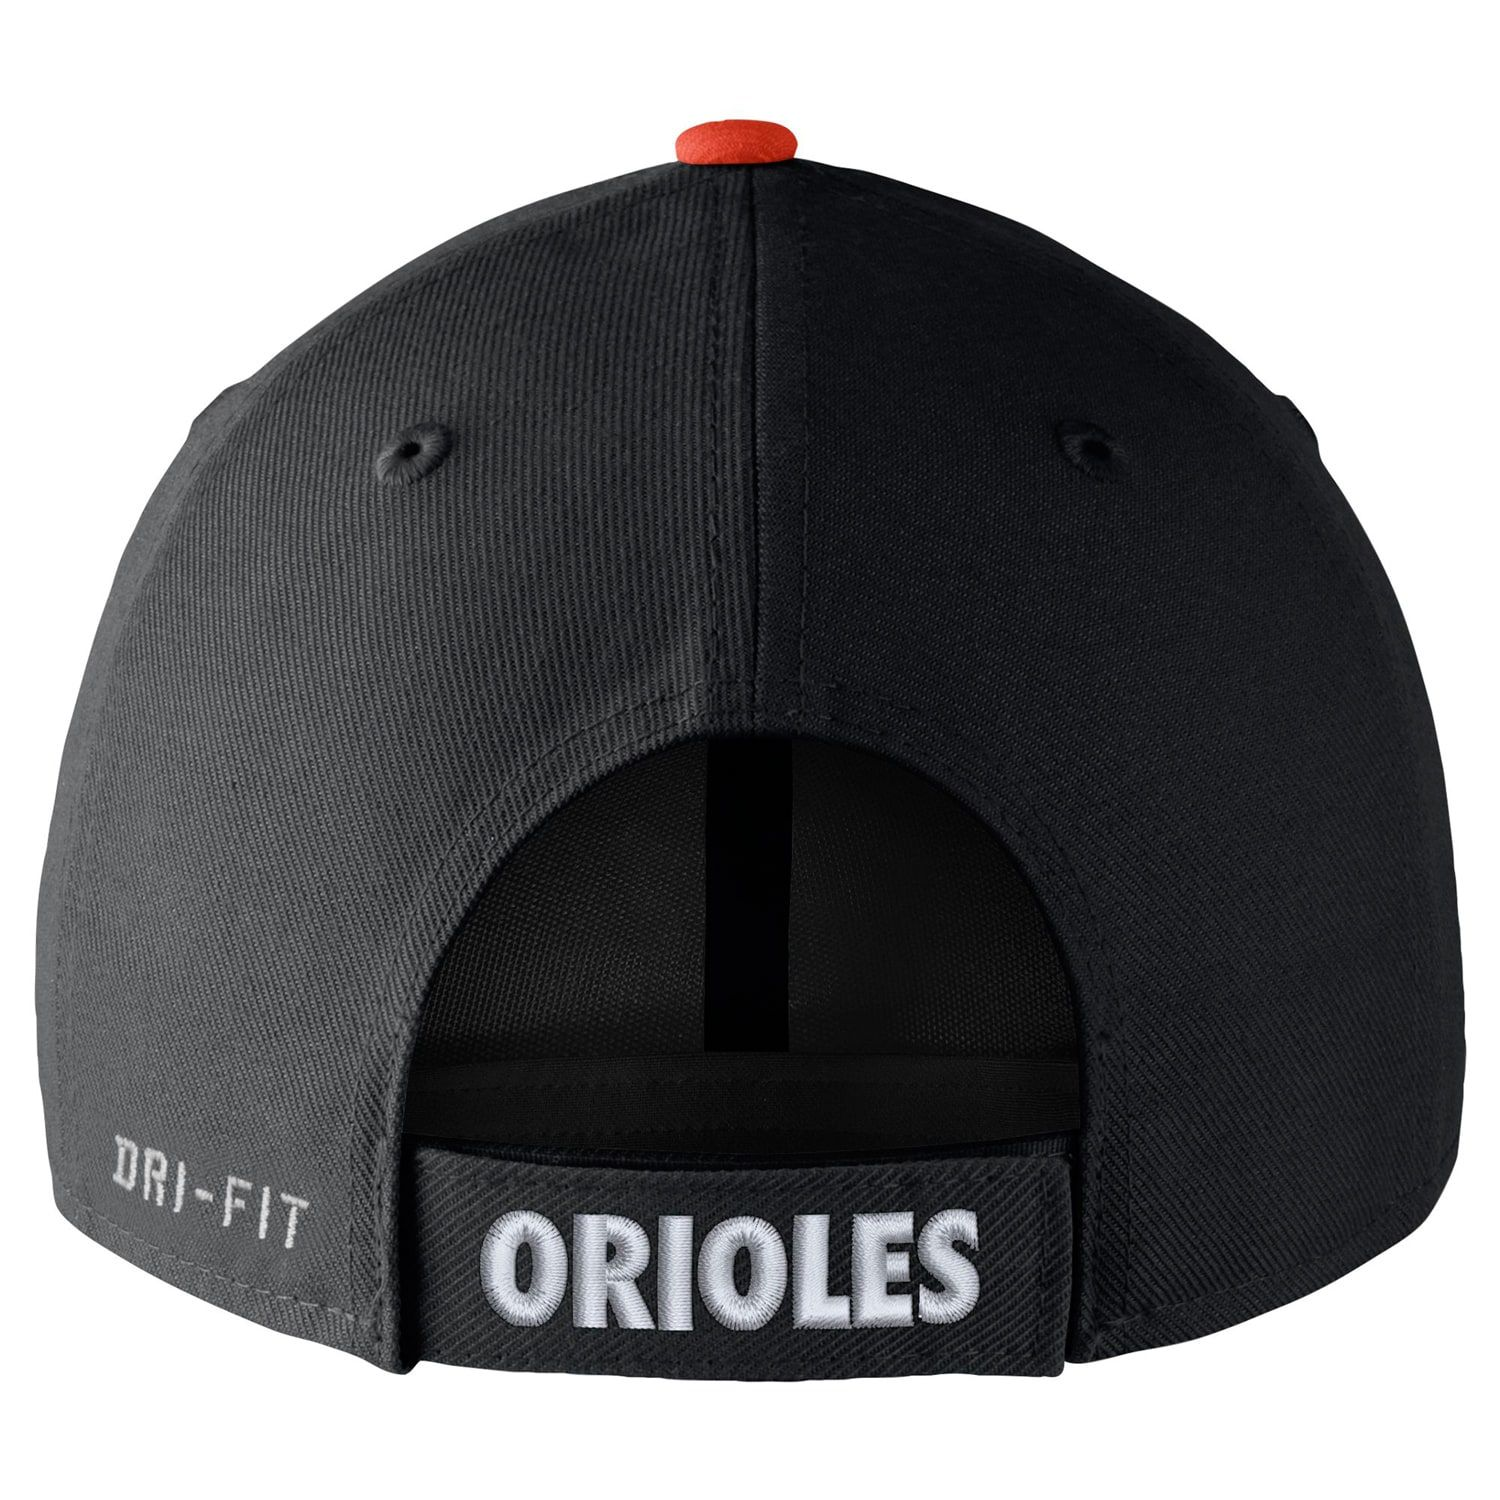 separation shoes c4329 93117 Adult Nike Baltimore Orioles Wool Classic Dri-FIT Adjustable Cap  Orioles,   Wool,  Baltimore,  Adult